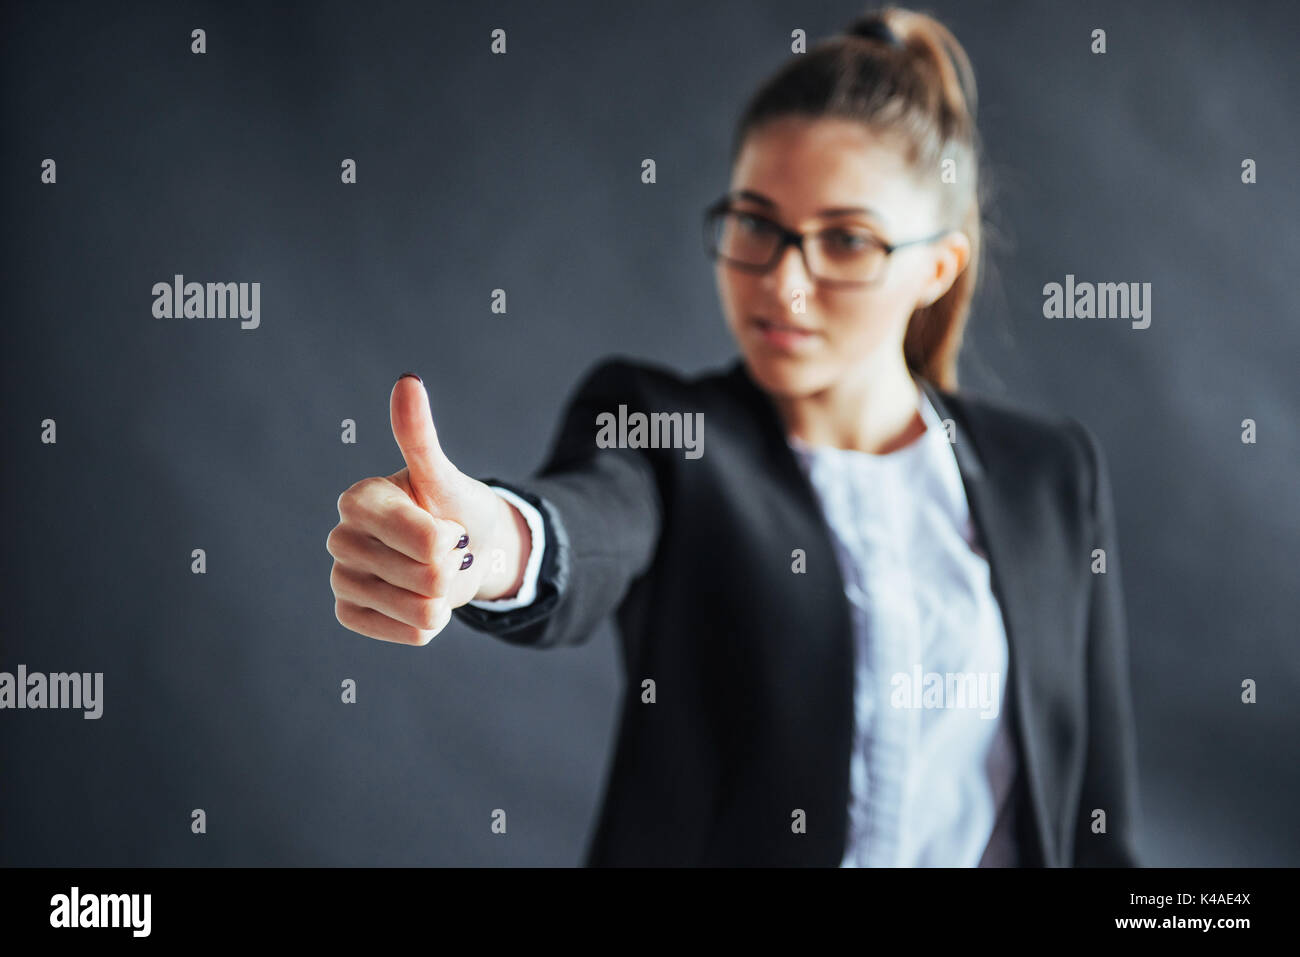 Young woman shows thumb up standing on black background, focus on hand. - Stock Image